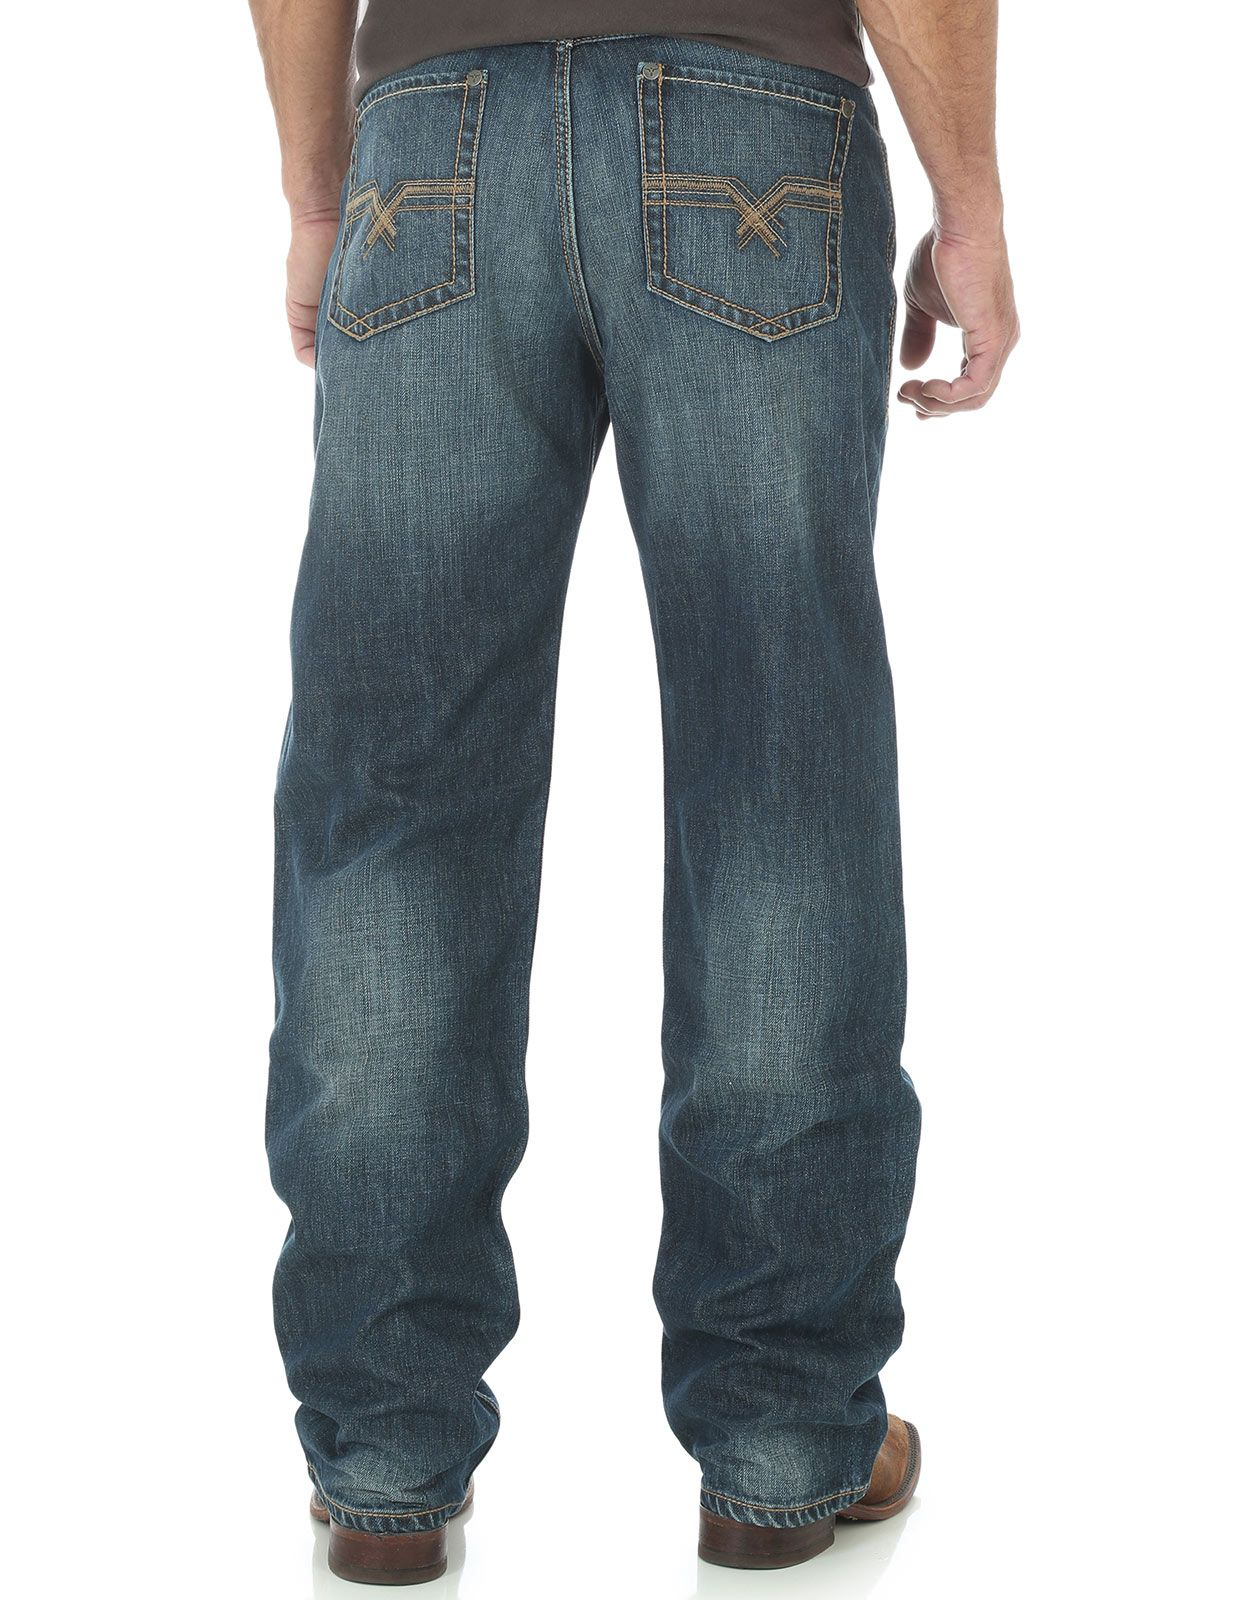 Wrangler Men's 20X 33 Extreme Mid Rise Loose Fit Straight Leg Jeans - Wells